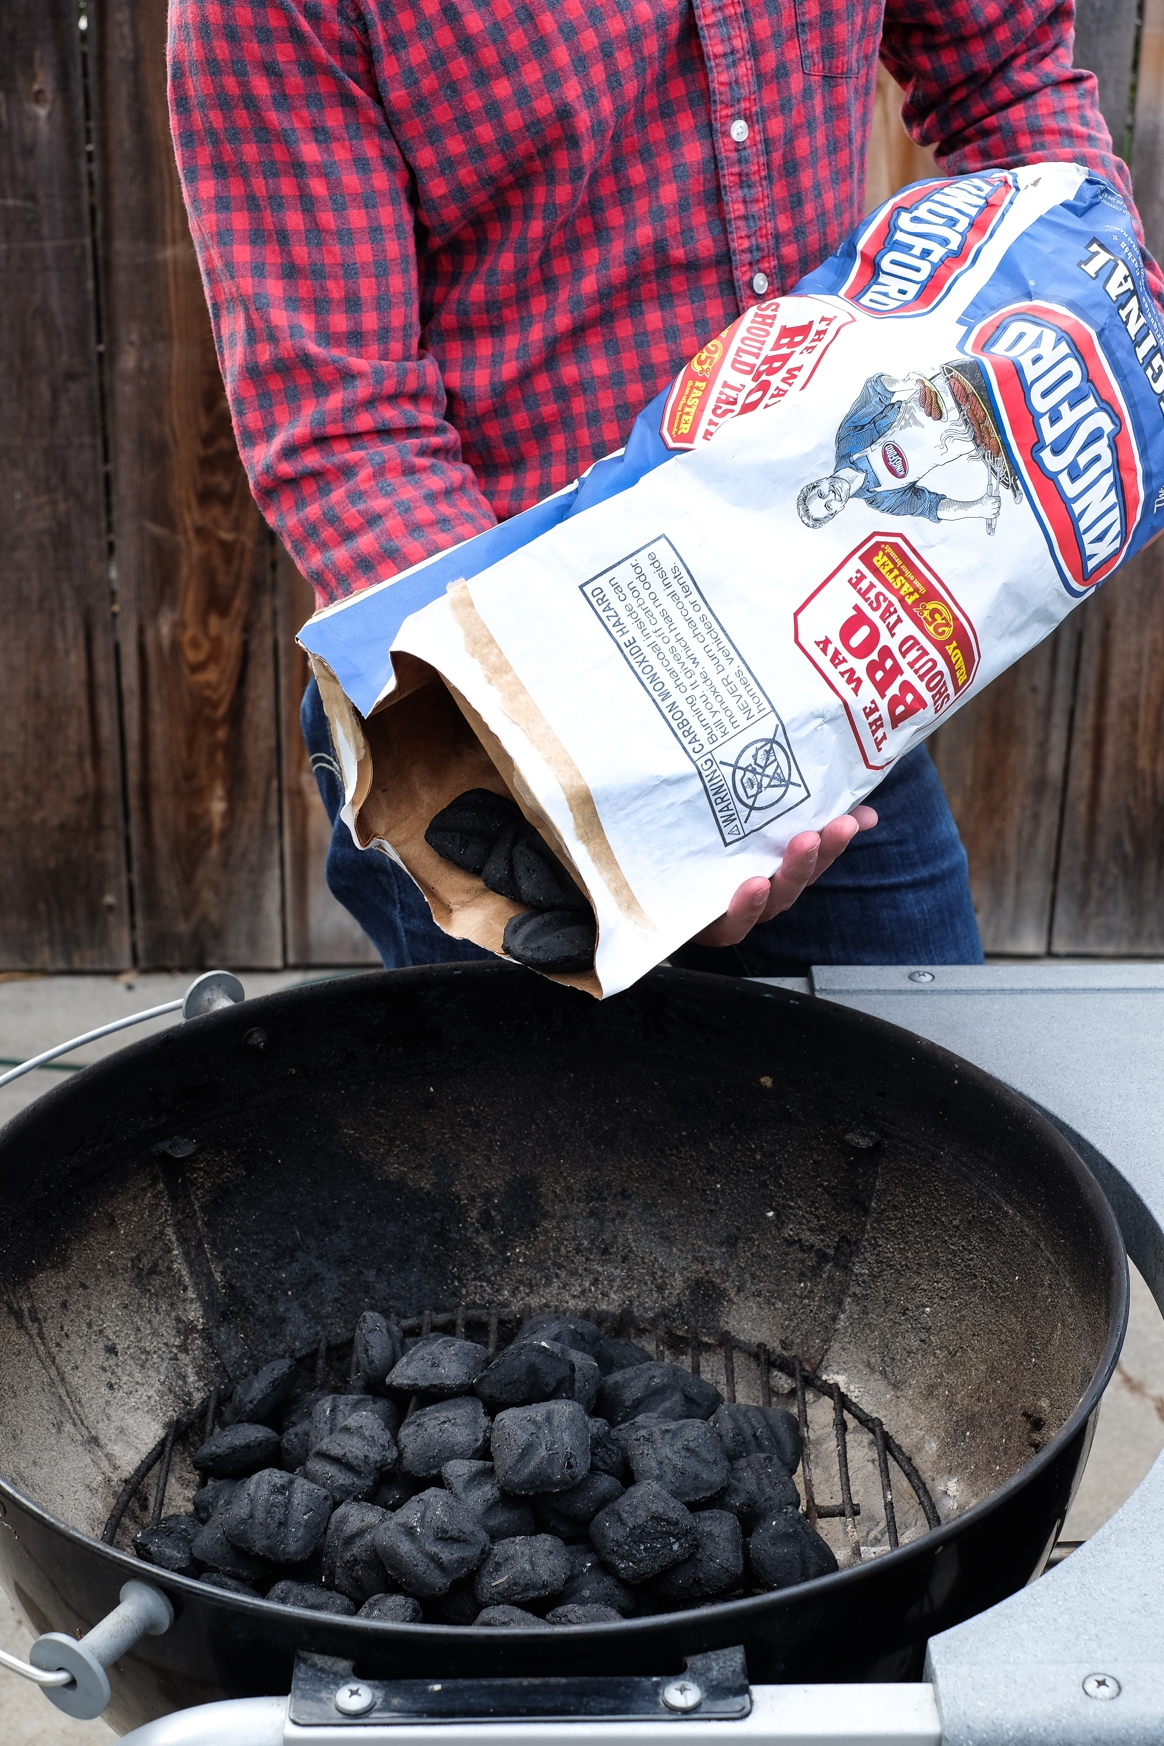 Kingsford® Original Charcoal Briquets